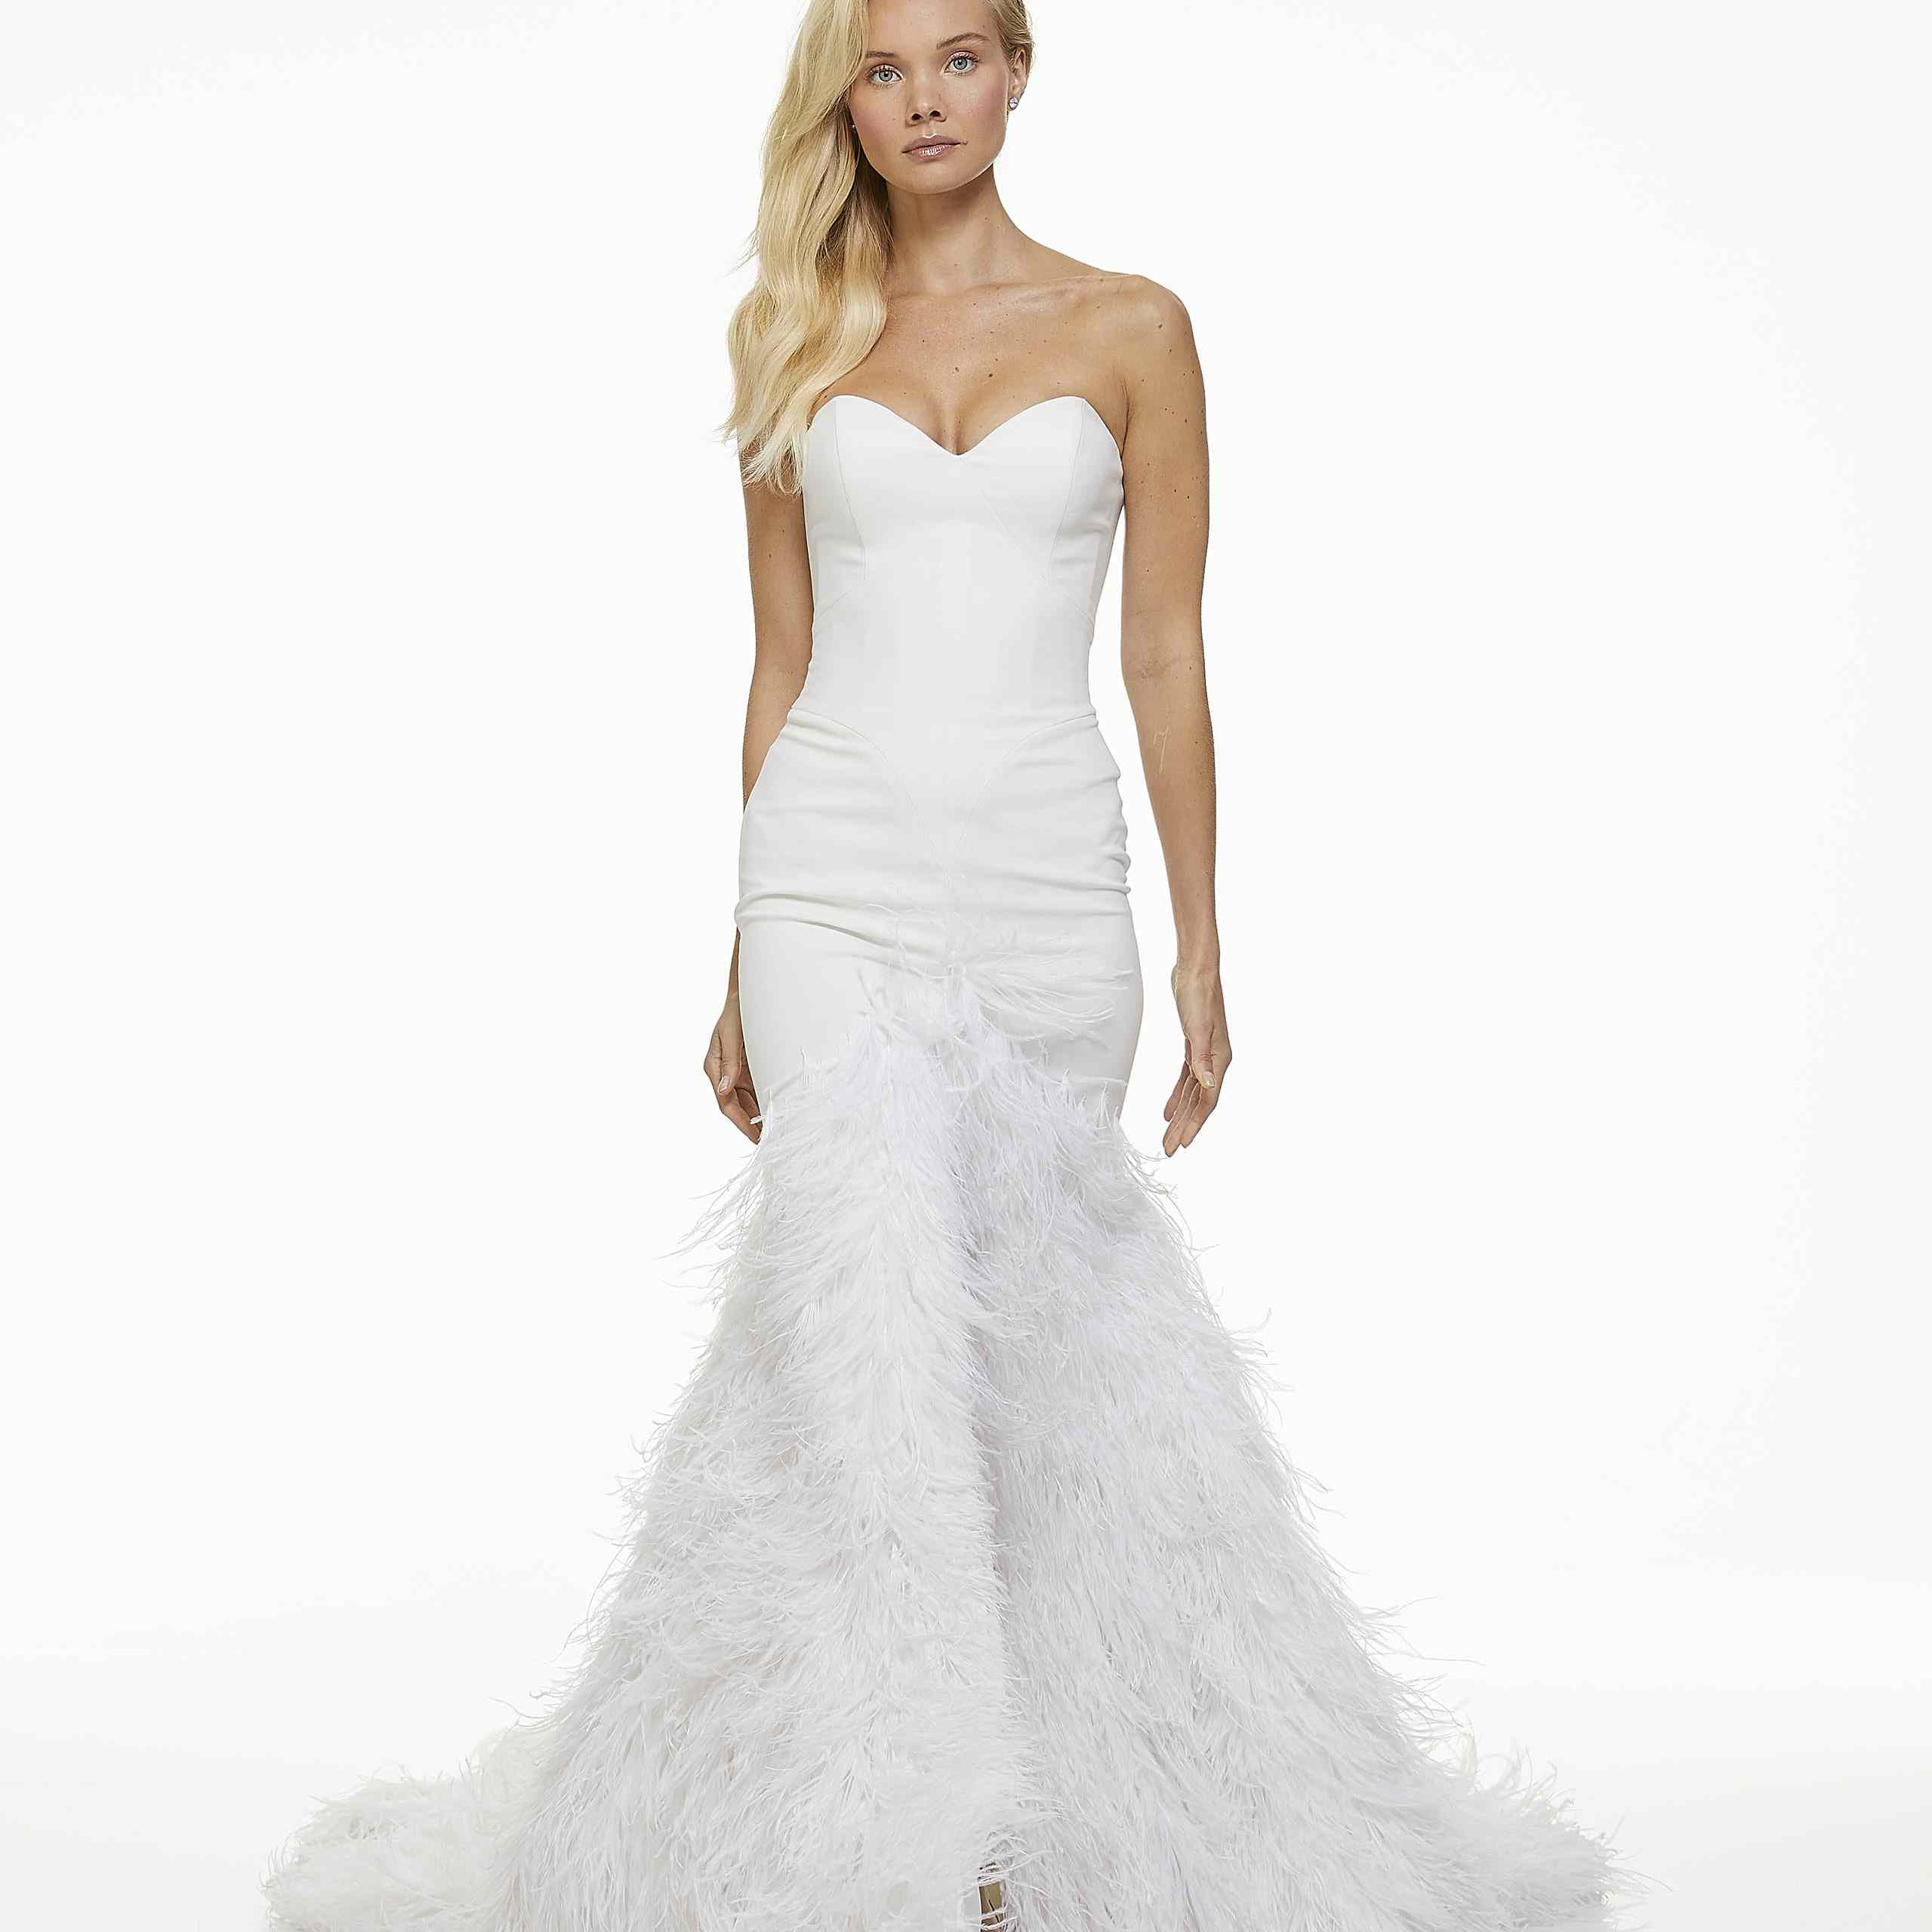 Model in strapless sweetheart wedding dress with feathers